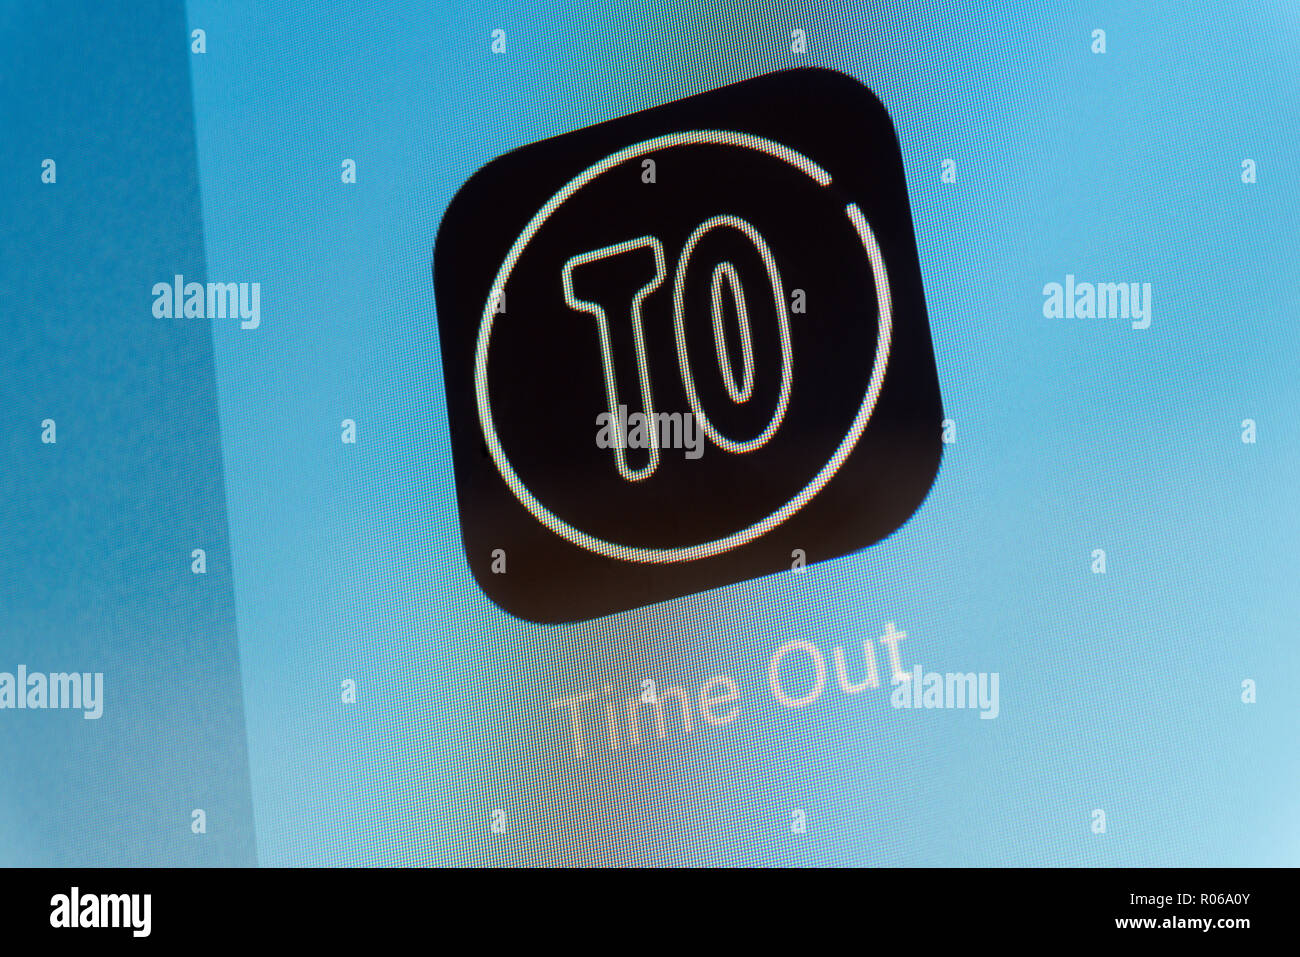 Time Out App on cellphone screen - Stock Image